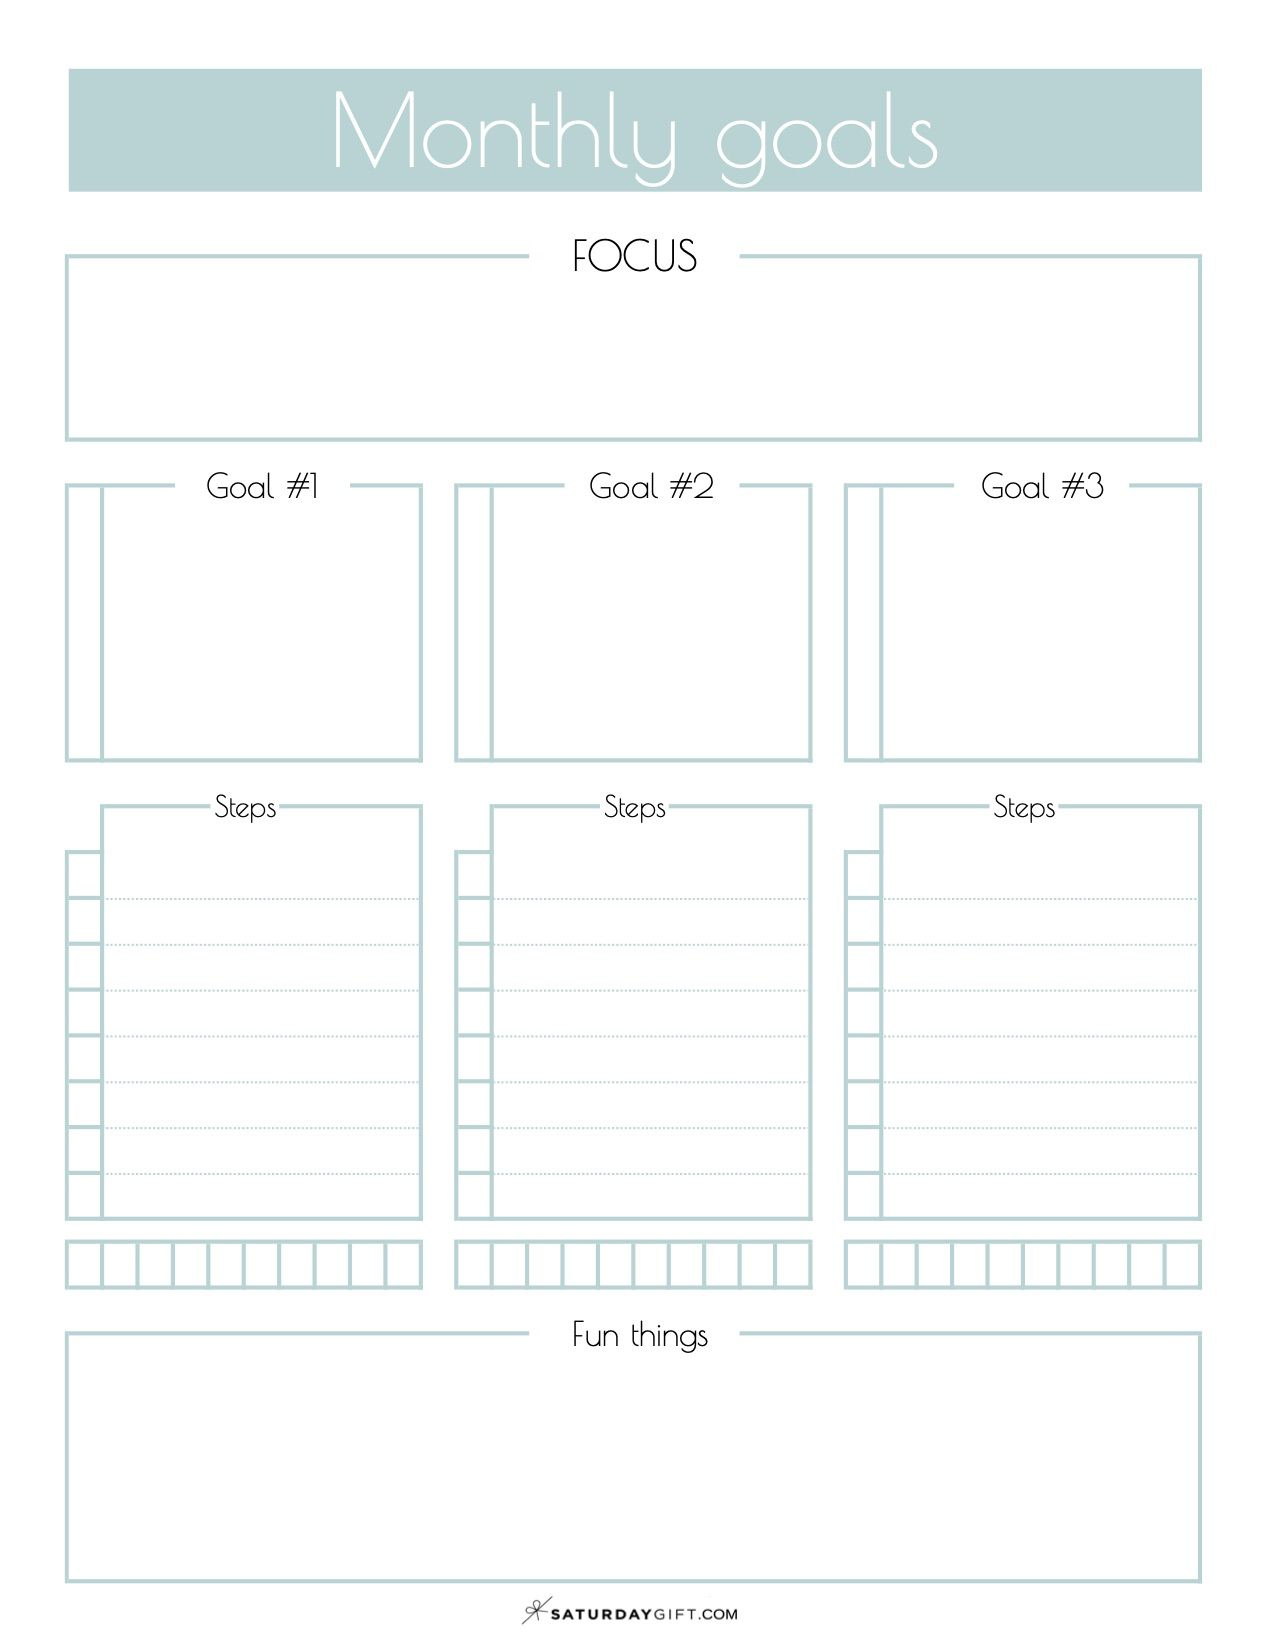 Monthly Goals Worksheet And Calendar Free Printable